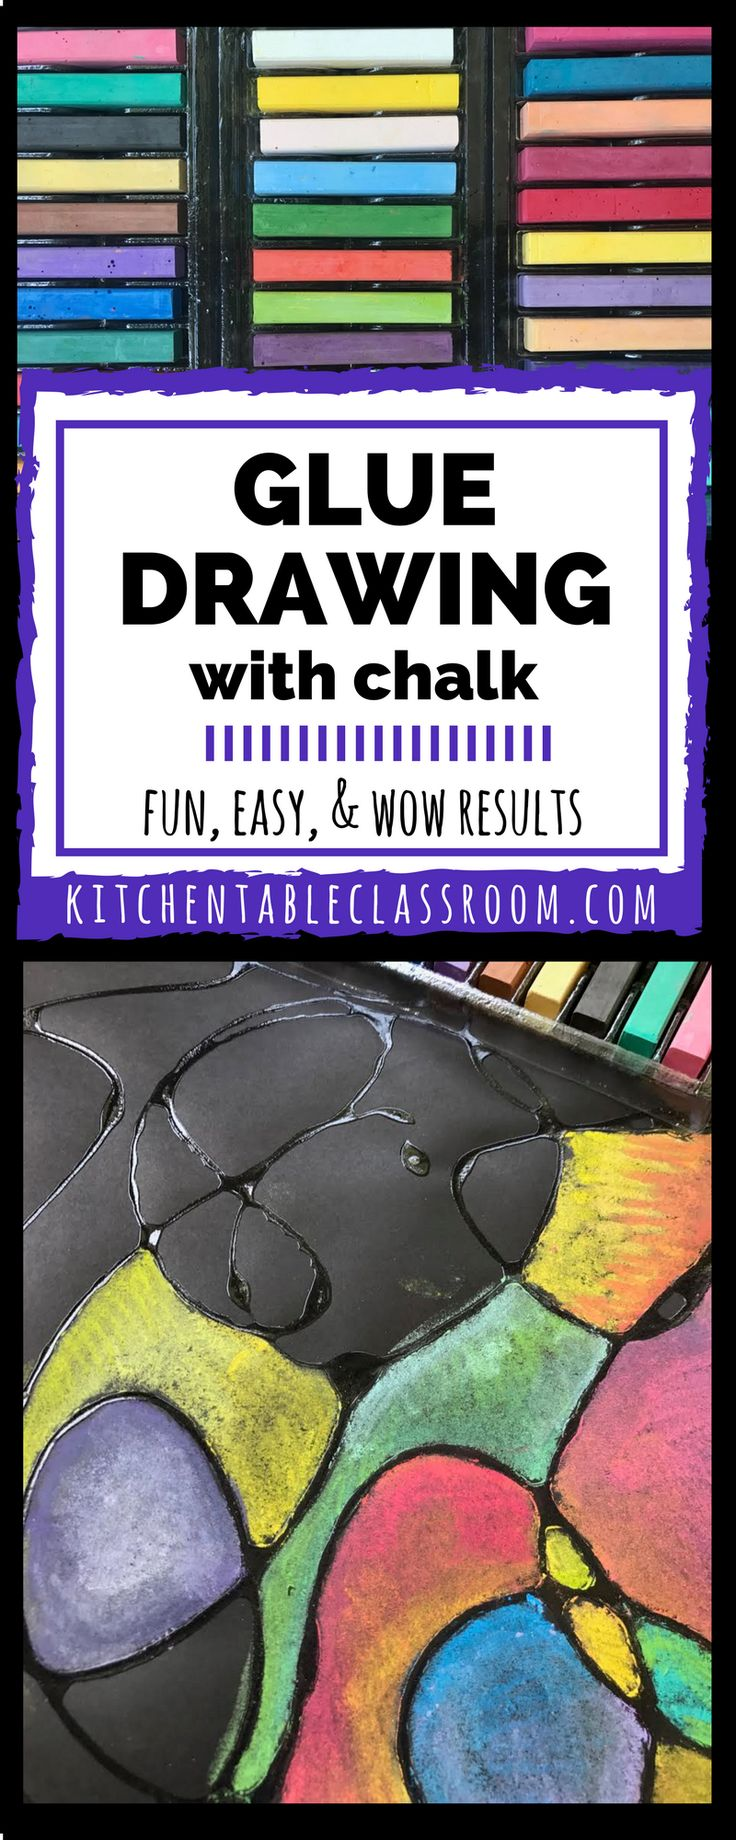 Glue drawing adds a third dimension to the art of drawing.  This project can be made easy or intense and can be easily adapted to any age or skill level.